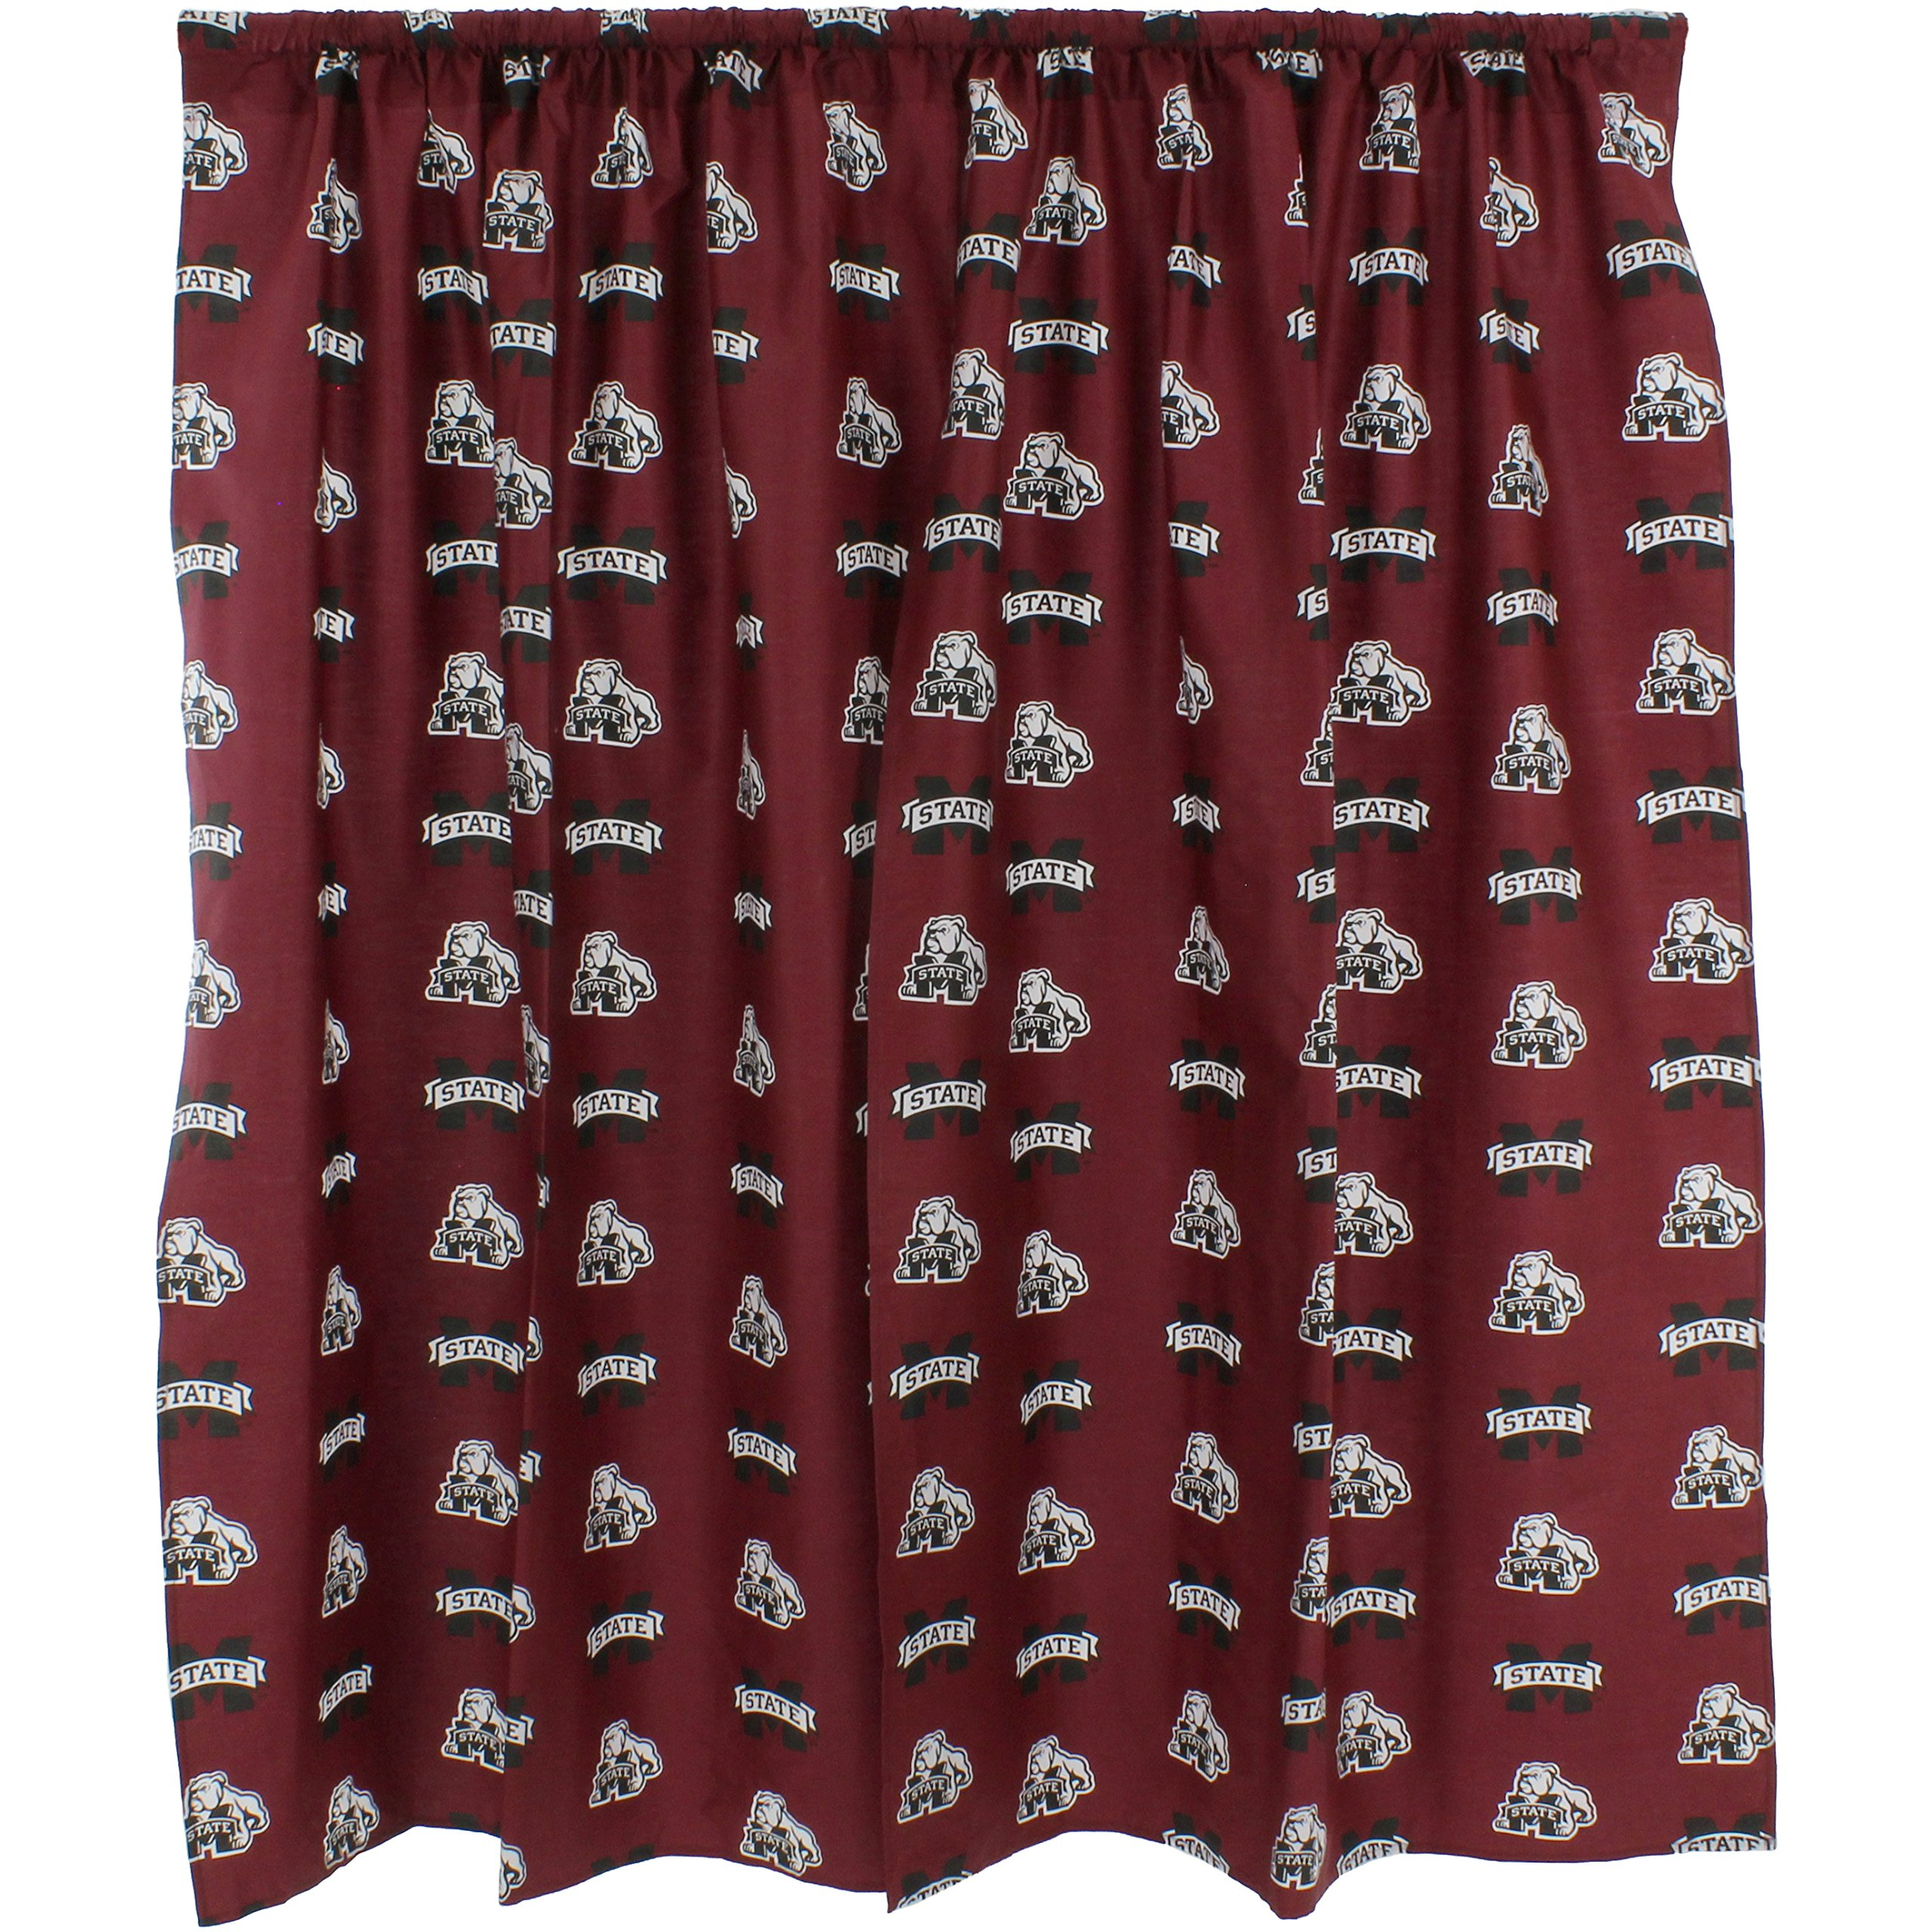 College Covers Shower Curtain Cover, 70'' x 72'', Mississippi State Bulldogs by College Covers